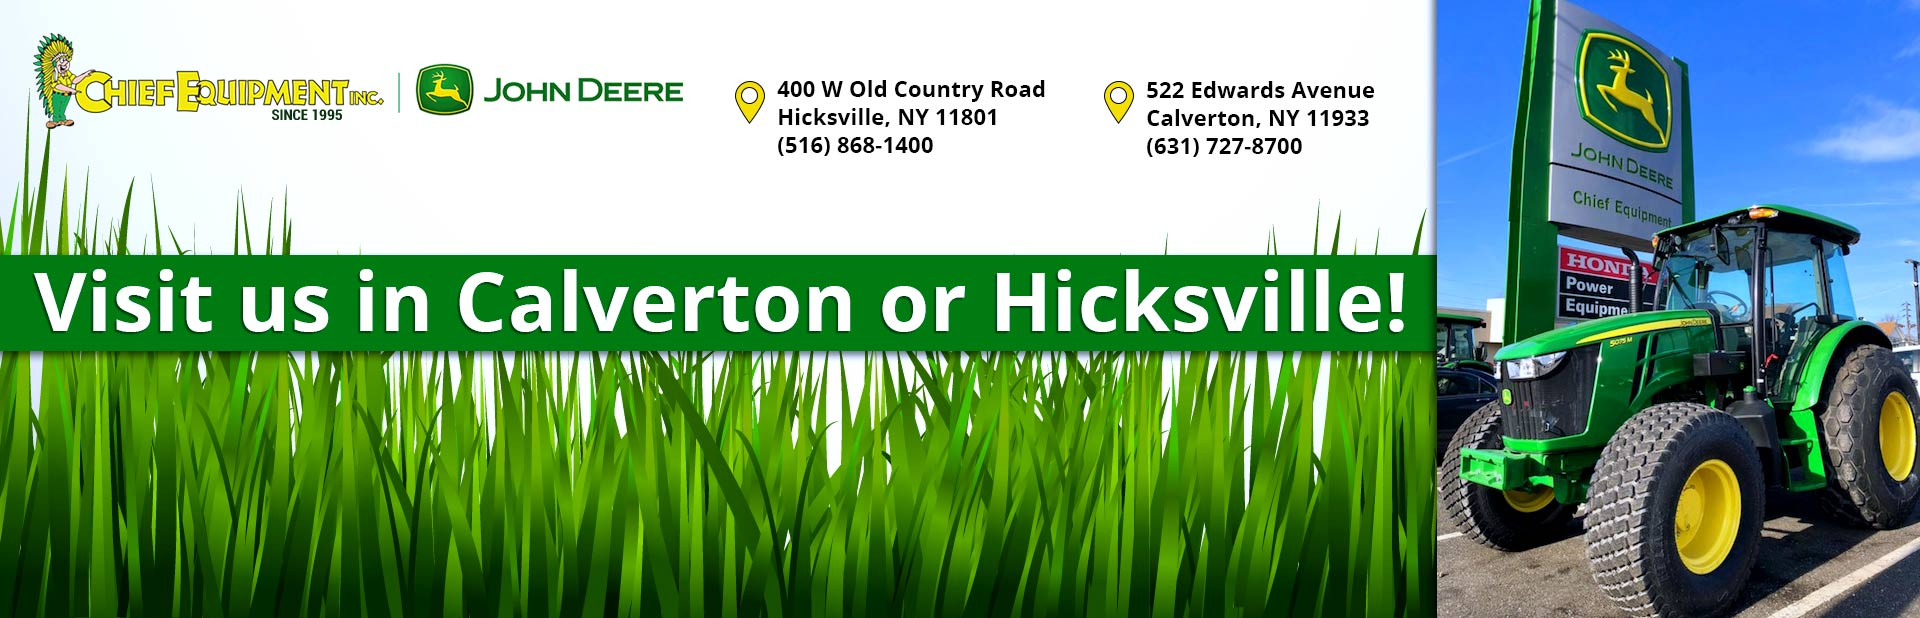 Visit us in Calverton or Hicksville!